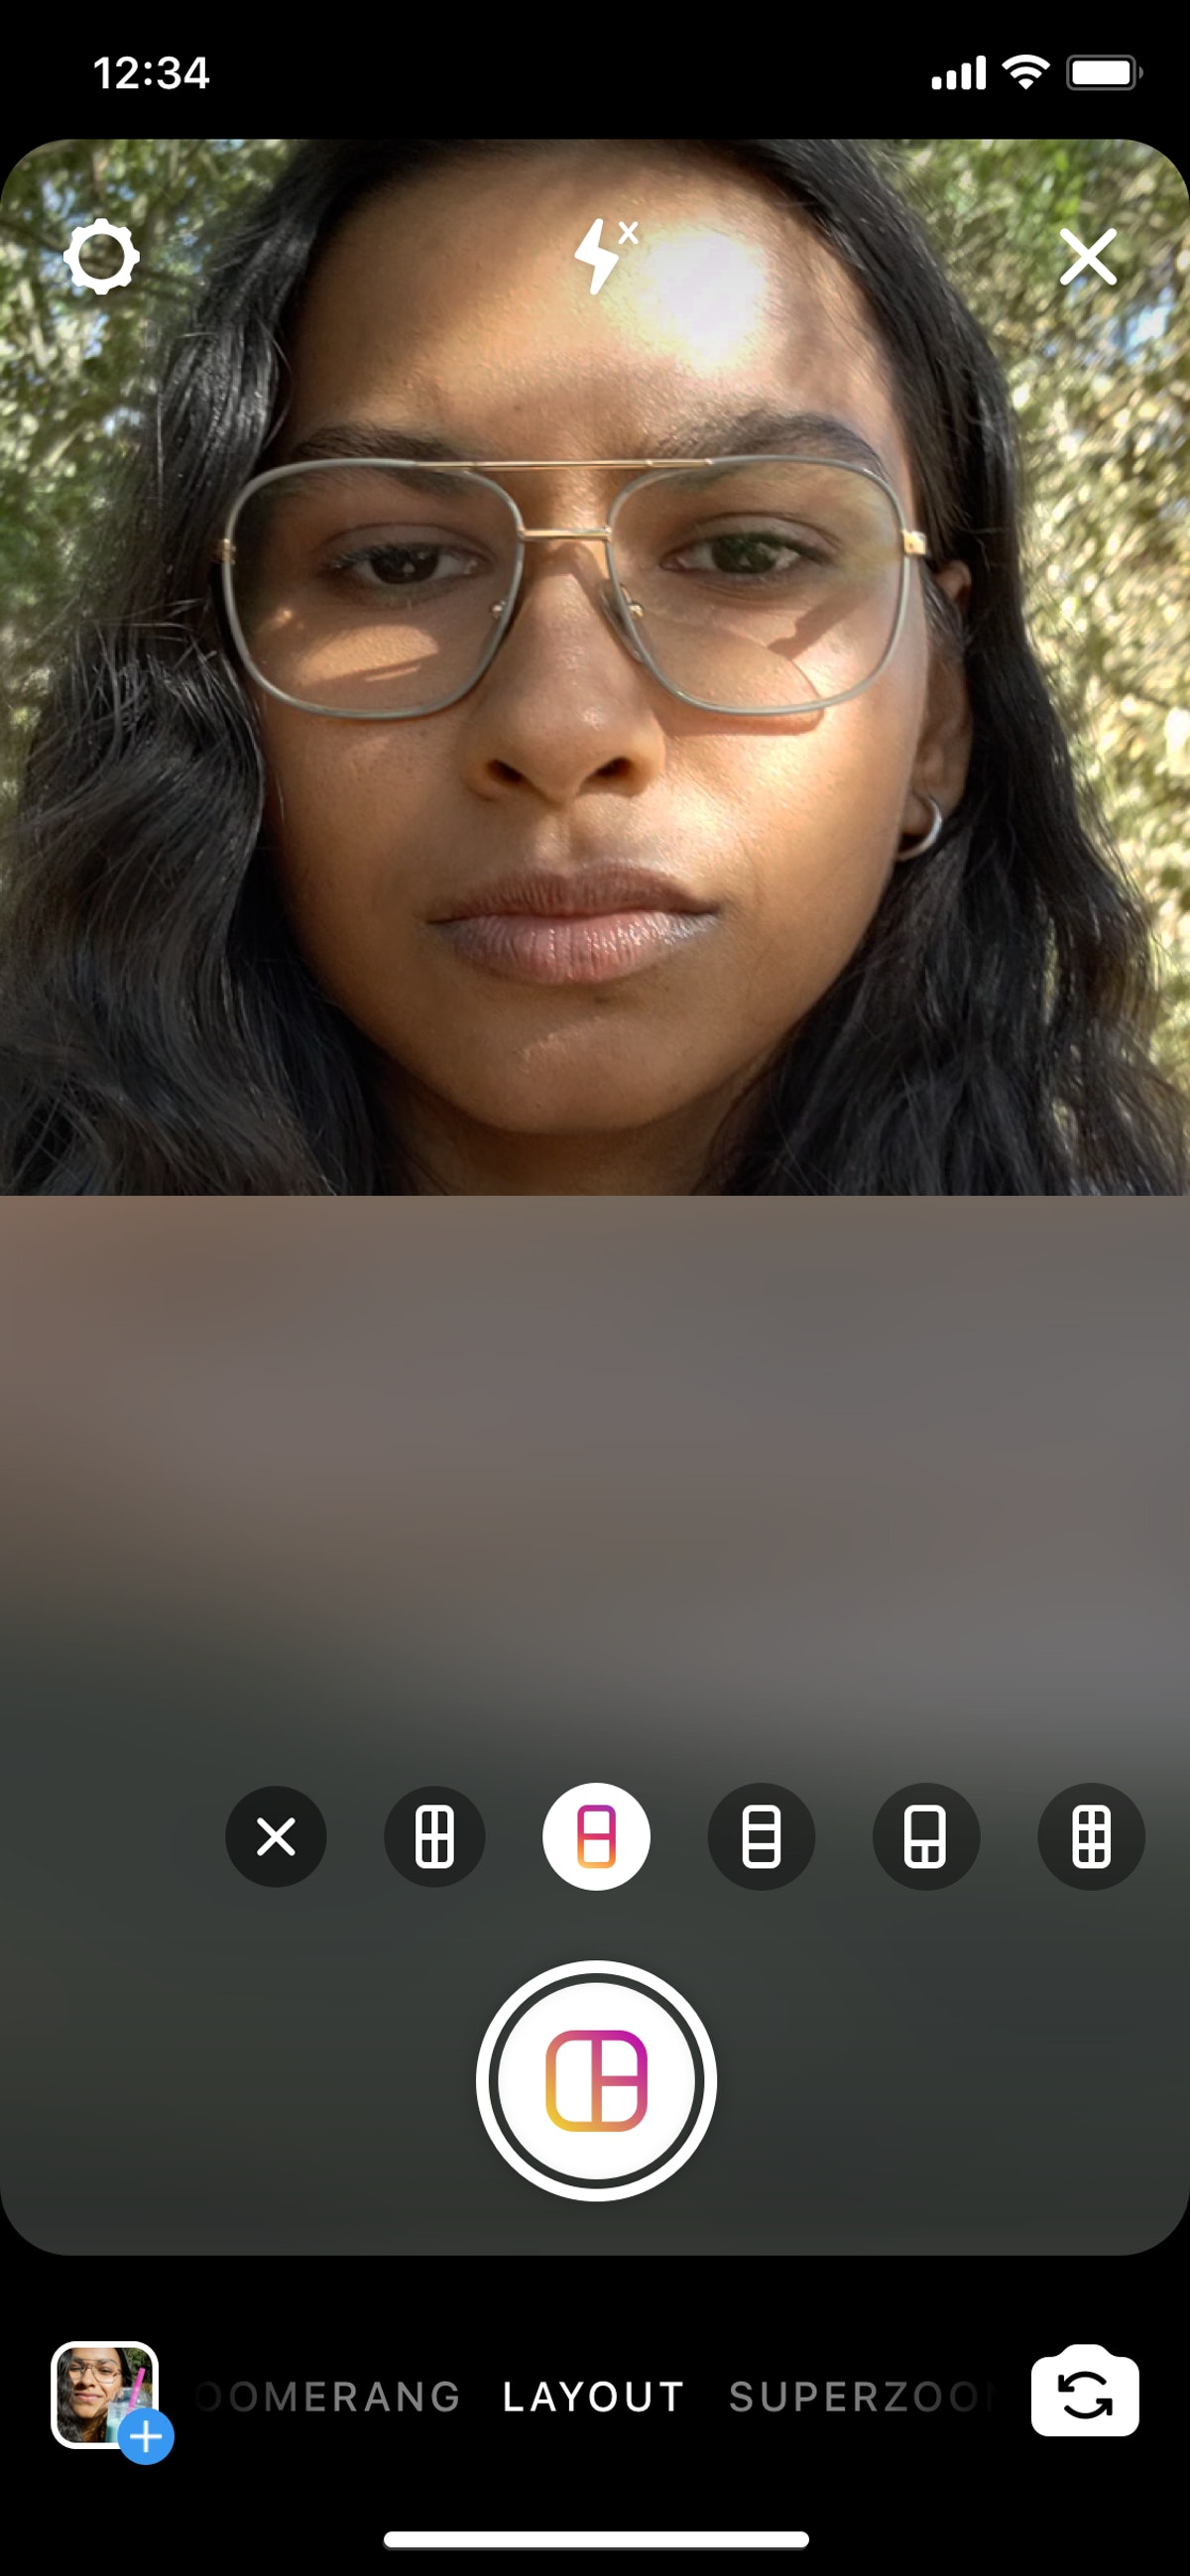 Instagram's new Layout feature for Stories will let you get creative.